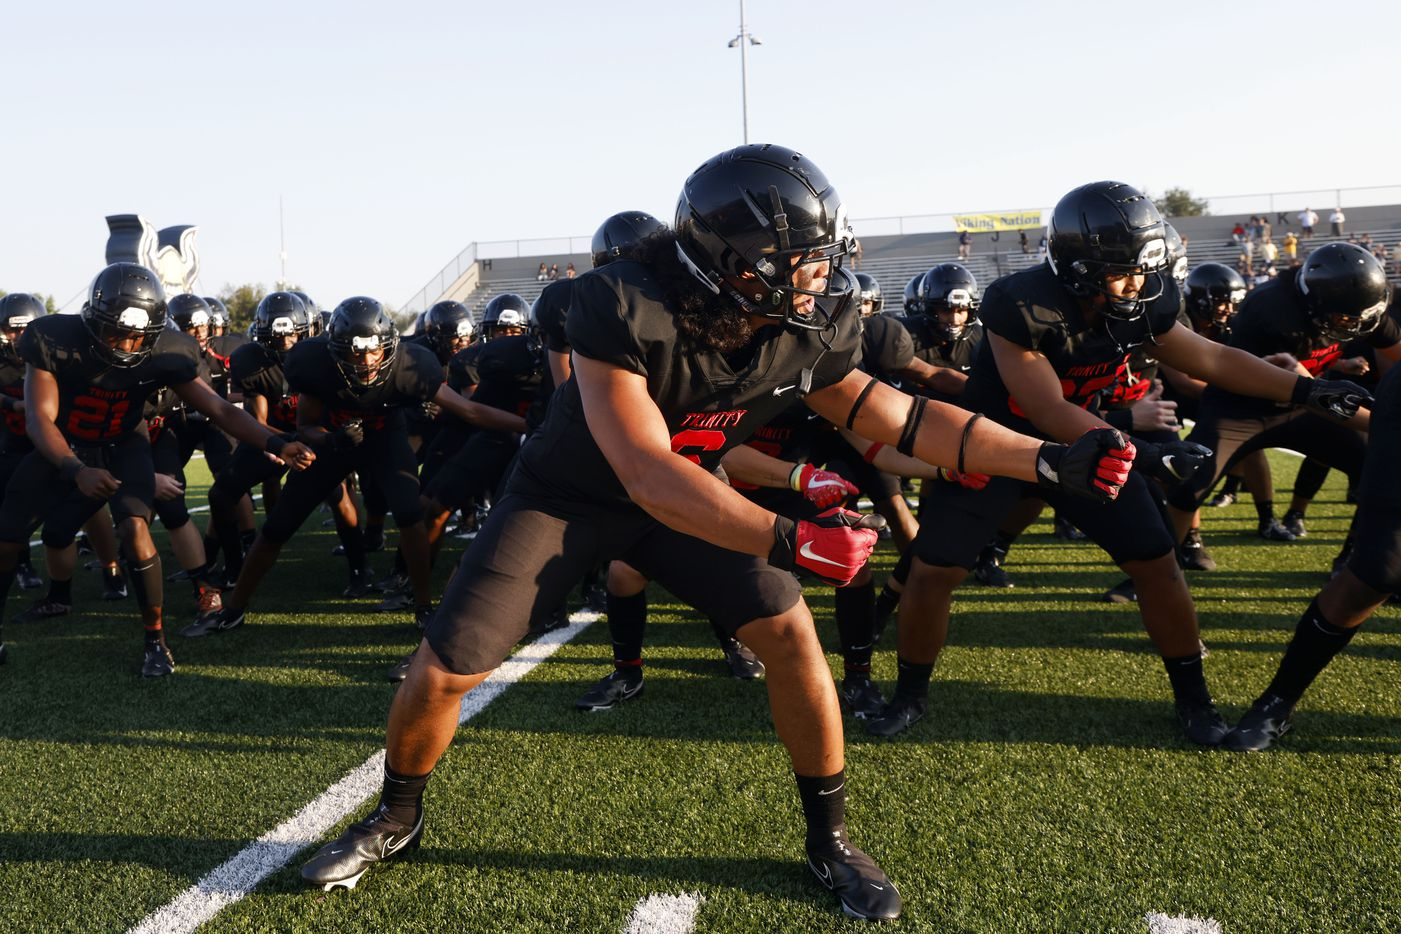 Euless Trinity defender Nai Mose leads the team in the haka dance prior to playing Arlington Lamar during their high school football game in Bedford, Texas on Aug. 26, 2021. (Michael Ainsworth/Special Contributor)